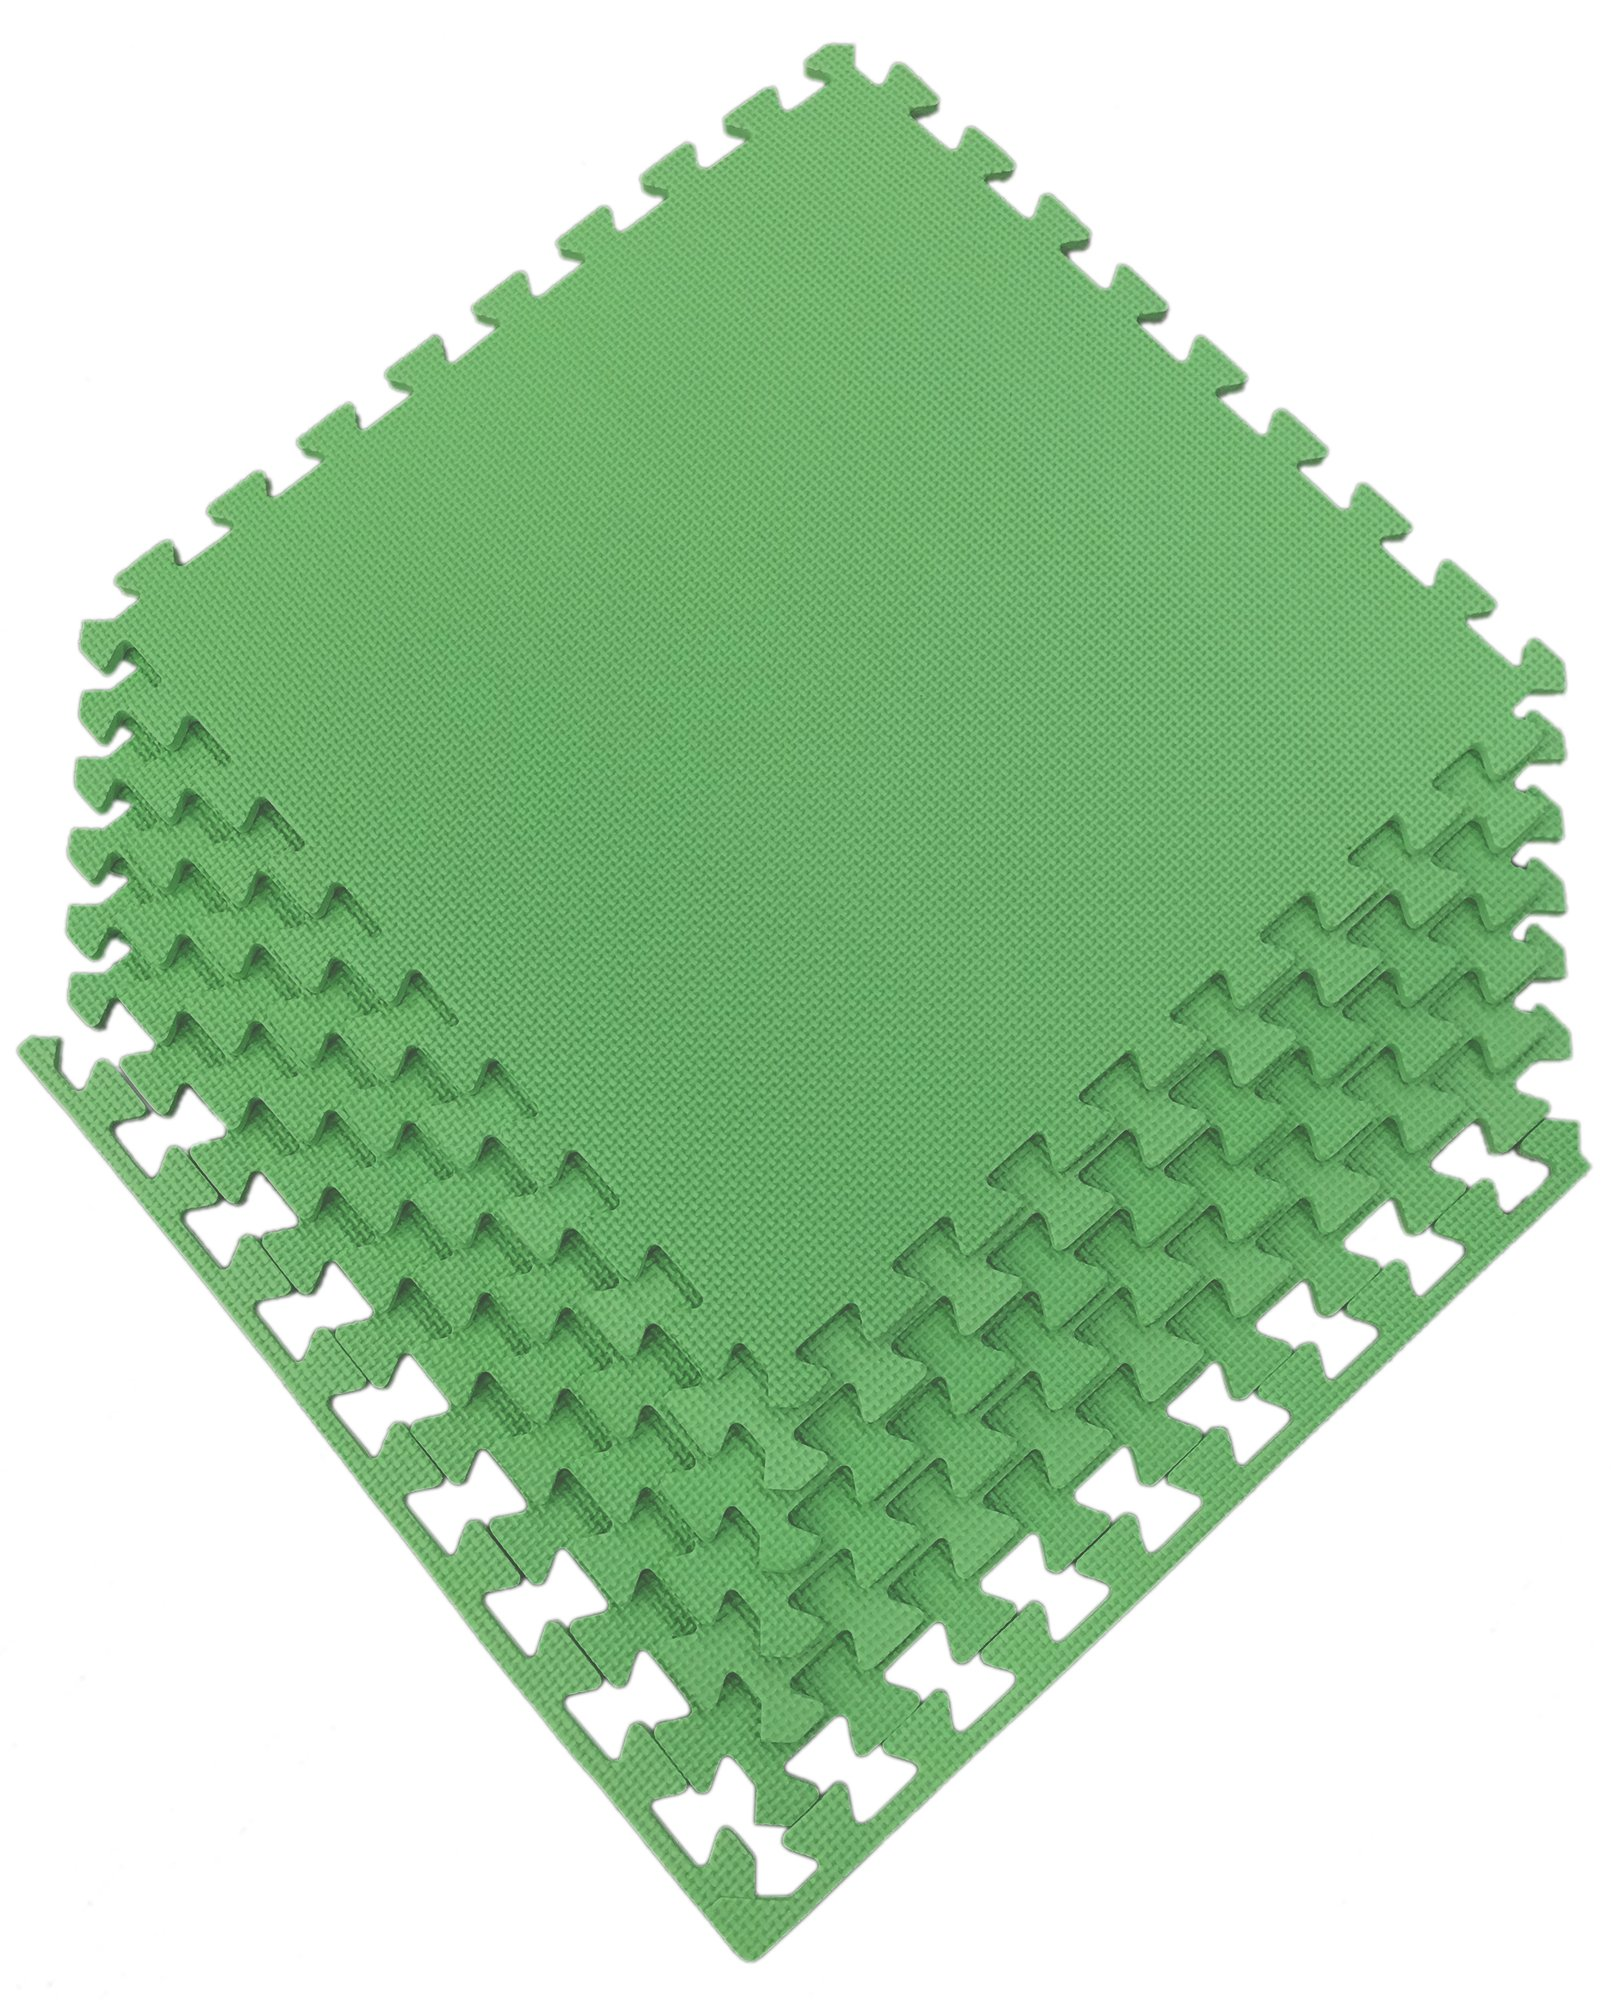 Ottomanson Multipurpose Interlocking Puzzle Eva Foam Tiles-Anti-Fatigue Mat 24 Sq. Ft, 24'' x 24'' Tiles, Green by Ottomanson